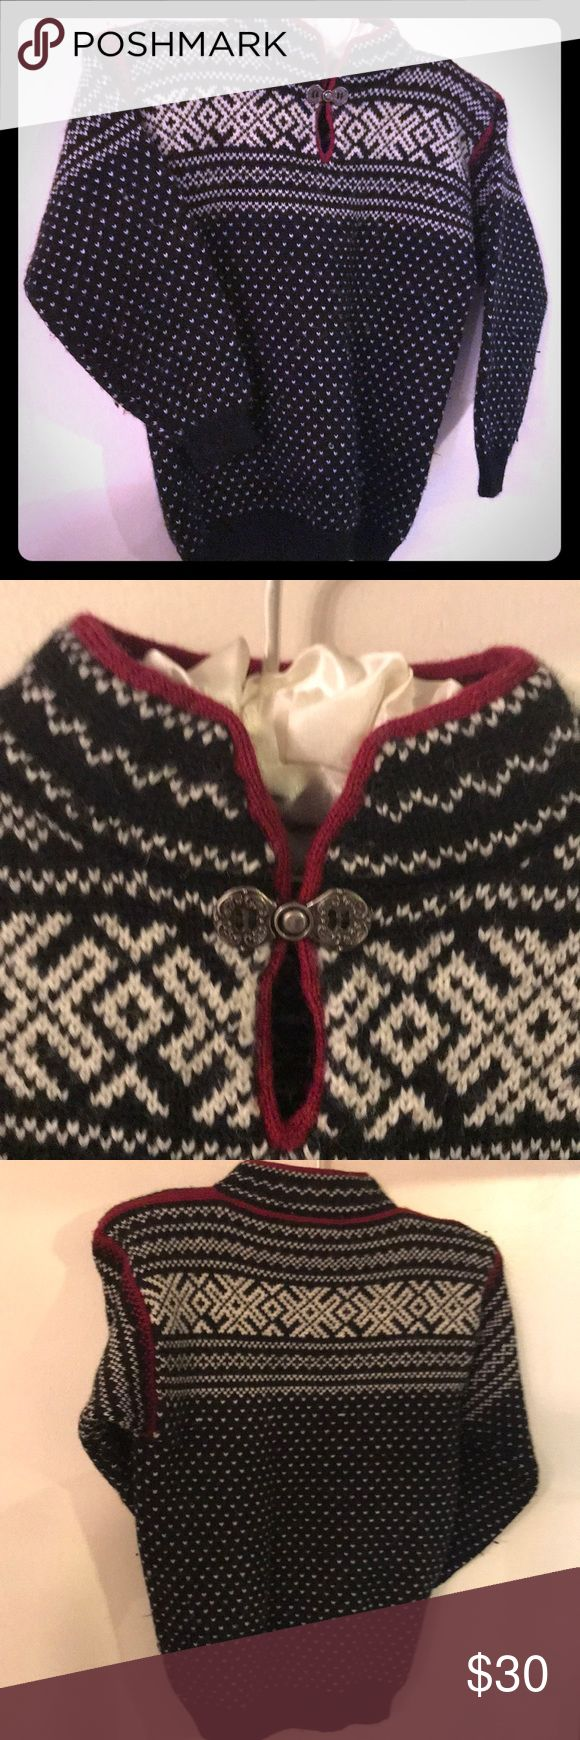 """Kids apres ski sweater Stunning """"Little Nomad Norwich Vermont"""" cozy sweater. Dress for the slopes even if you're not going. This trendy sweater is  black with white winter pattering and red trim. A beautiful silver clasp above a peekaboo opening makes this top even more stylish. Worn maybe once. Small amount of pilling due to the nature of the wool fabric. Little Nomad Shirts & Tops Sweaters"""